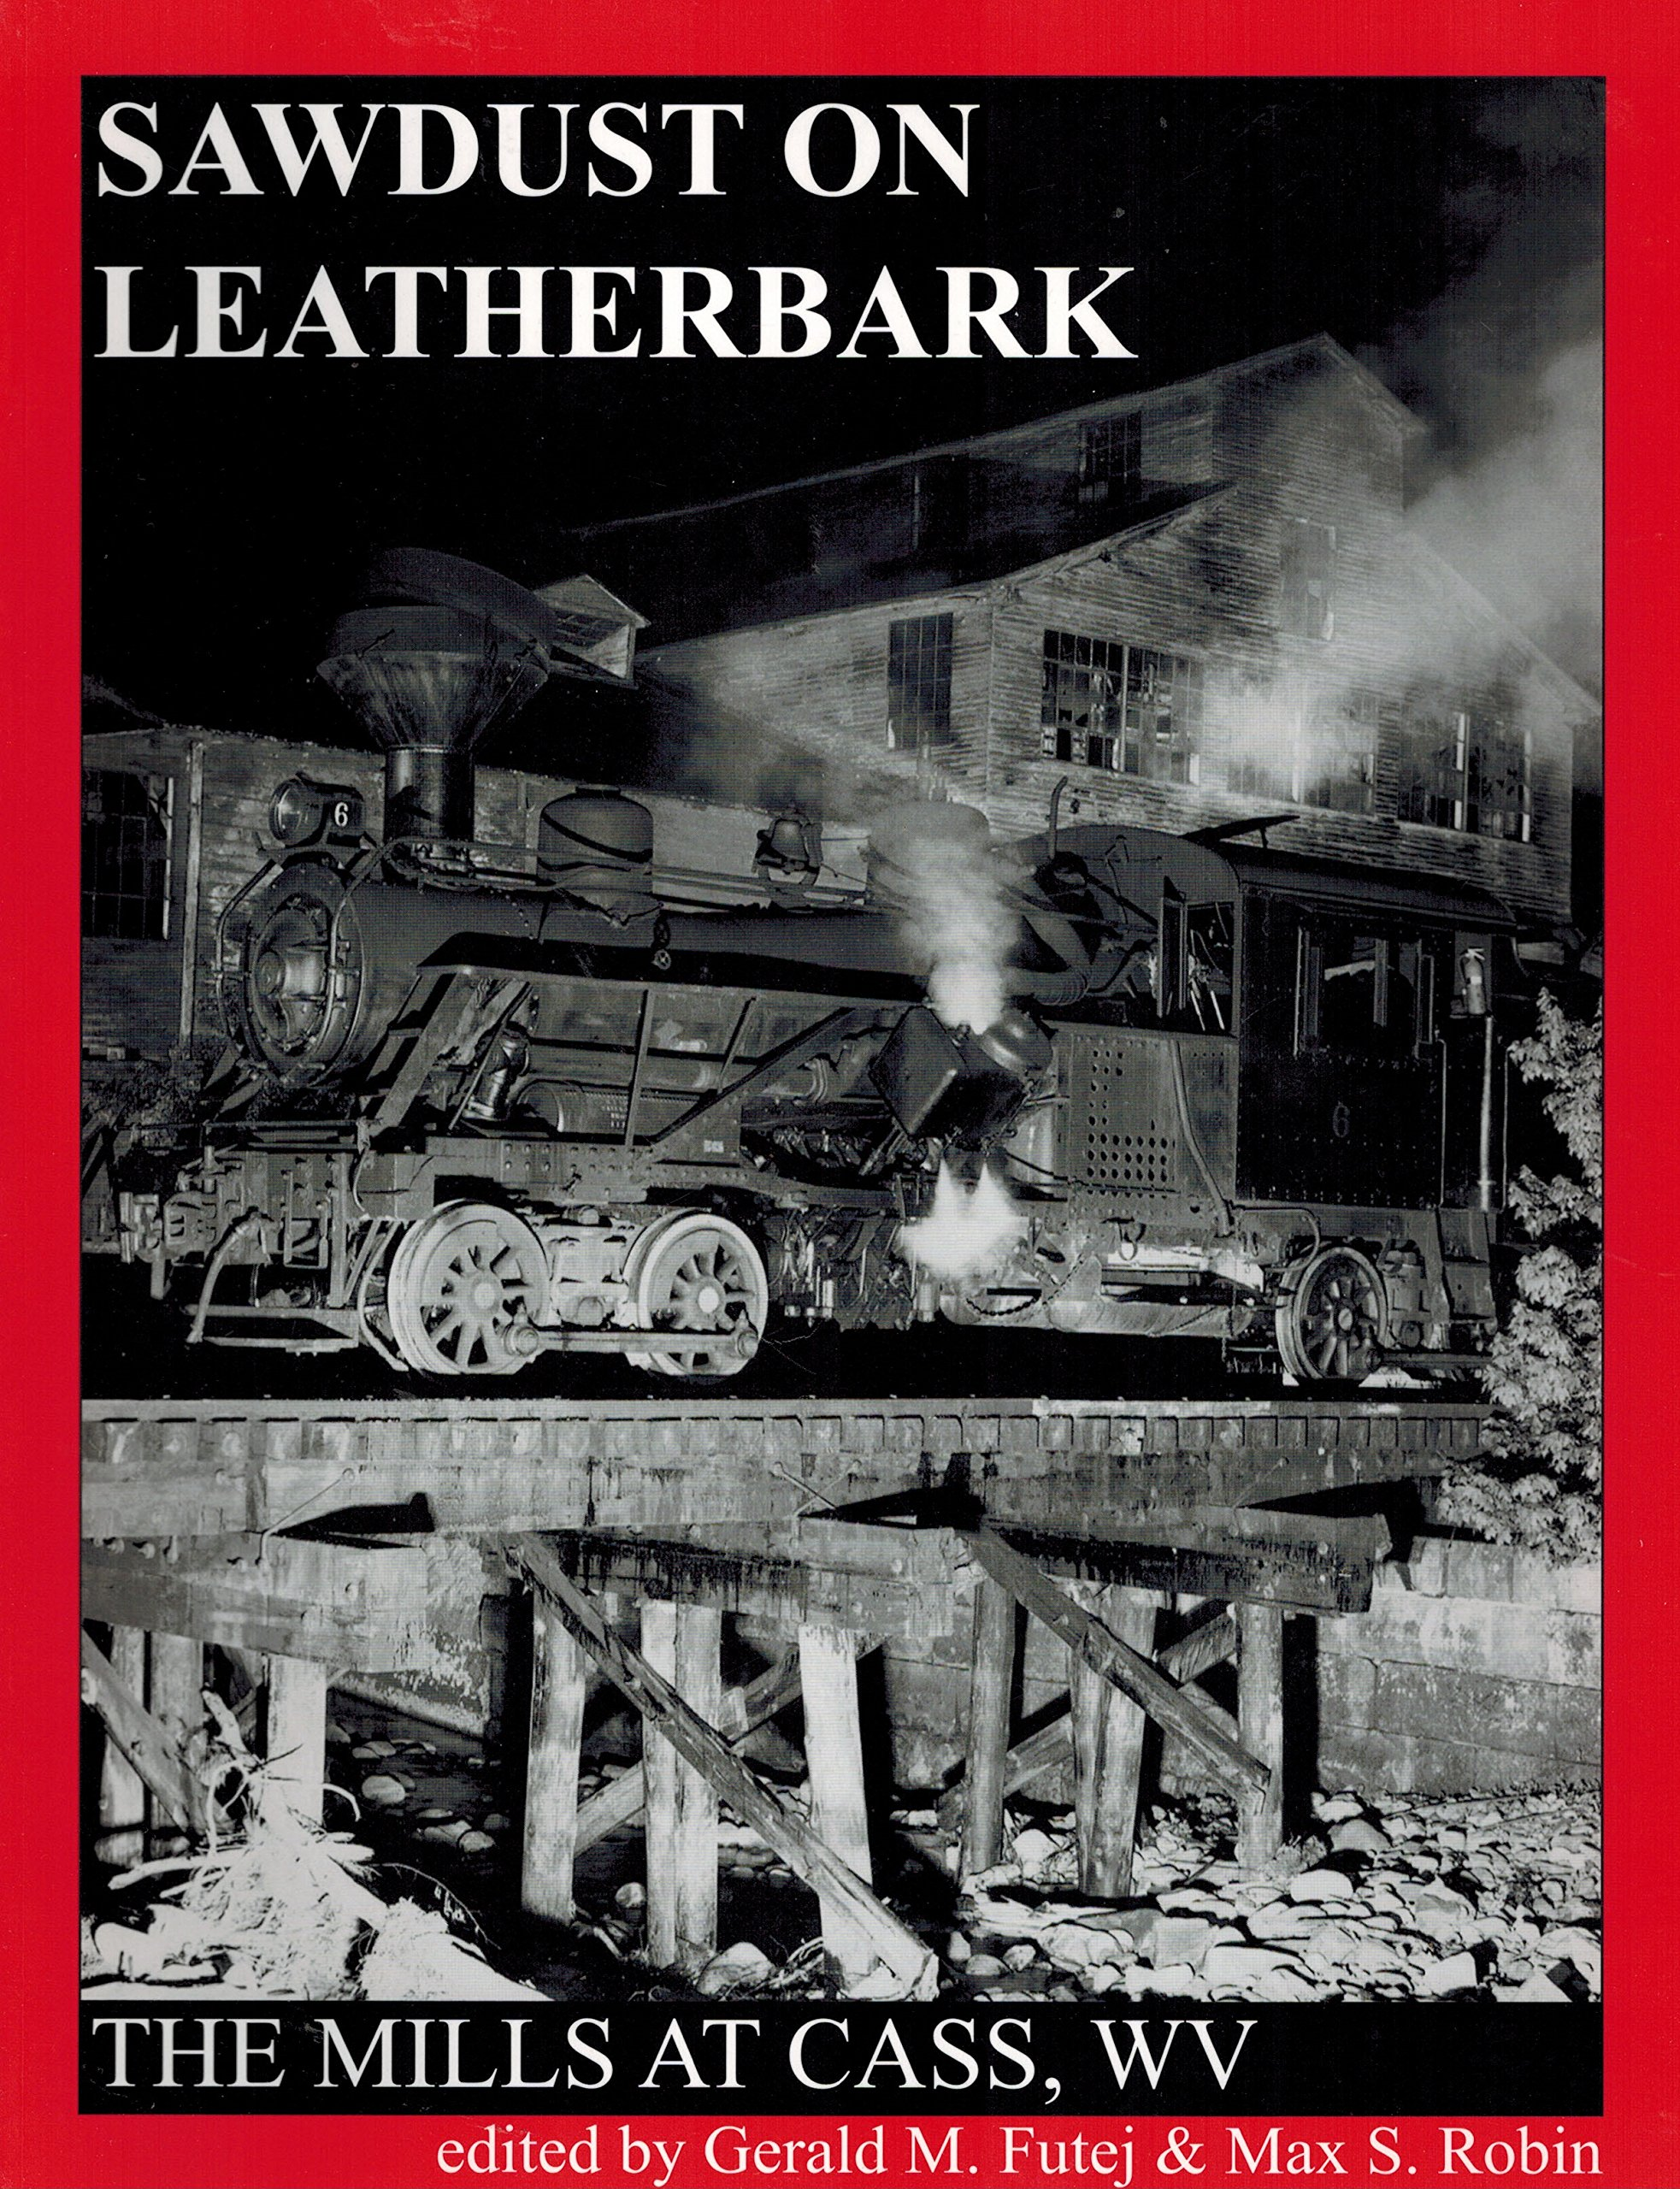 Download Sawdust on Leatherbark The Mills at Cass, WV PDF